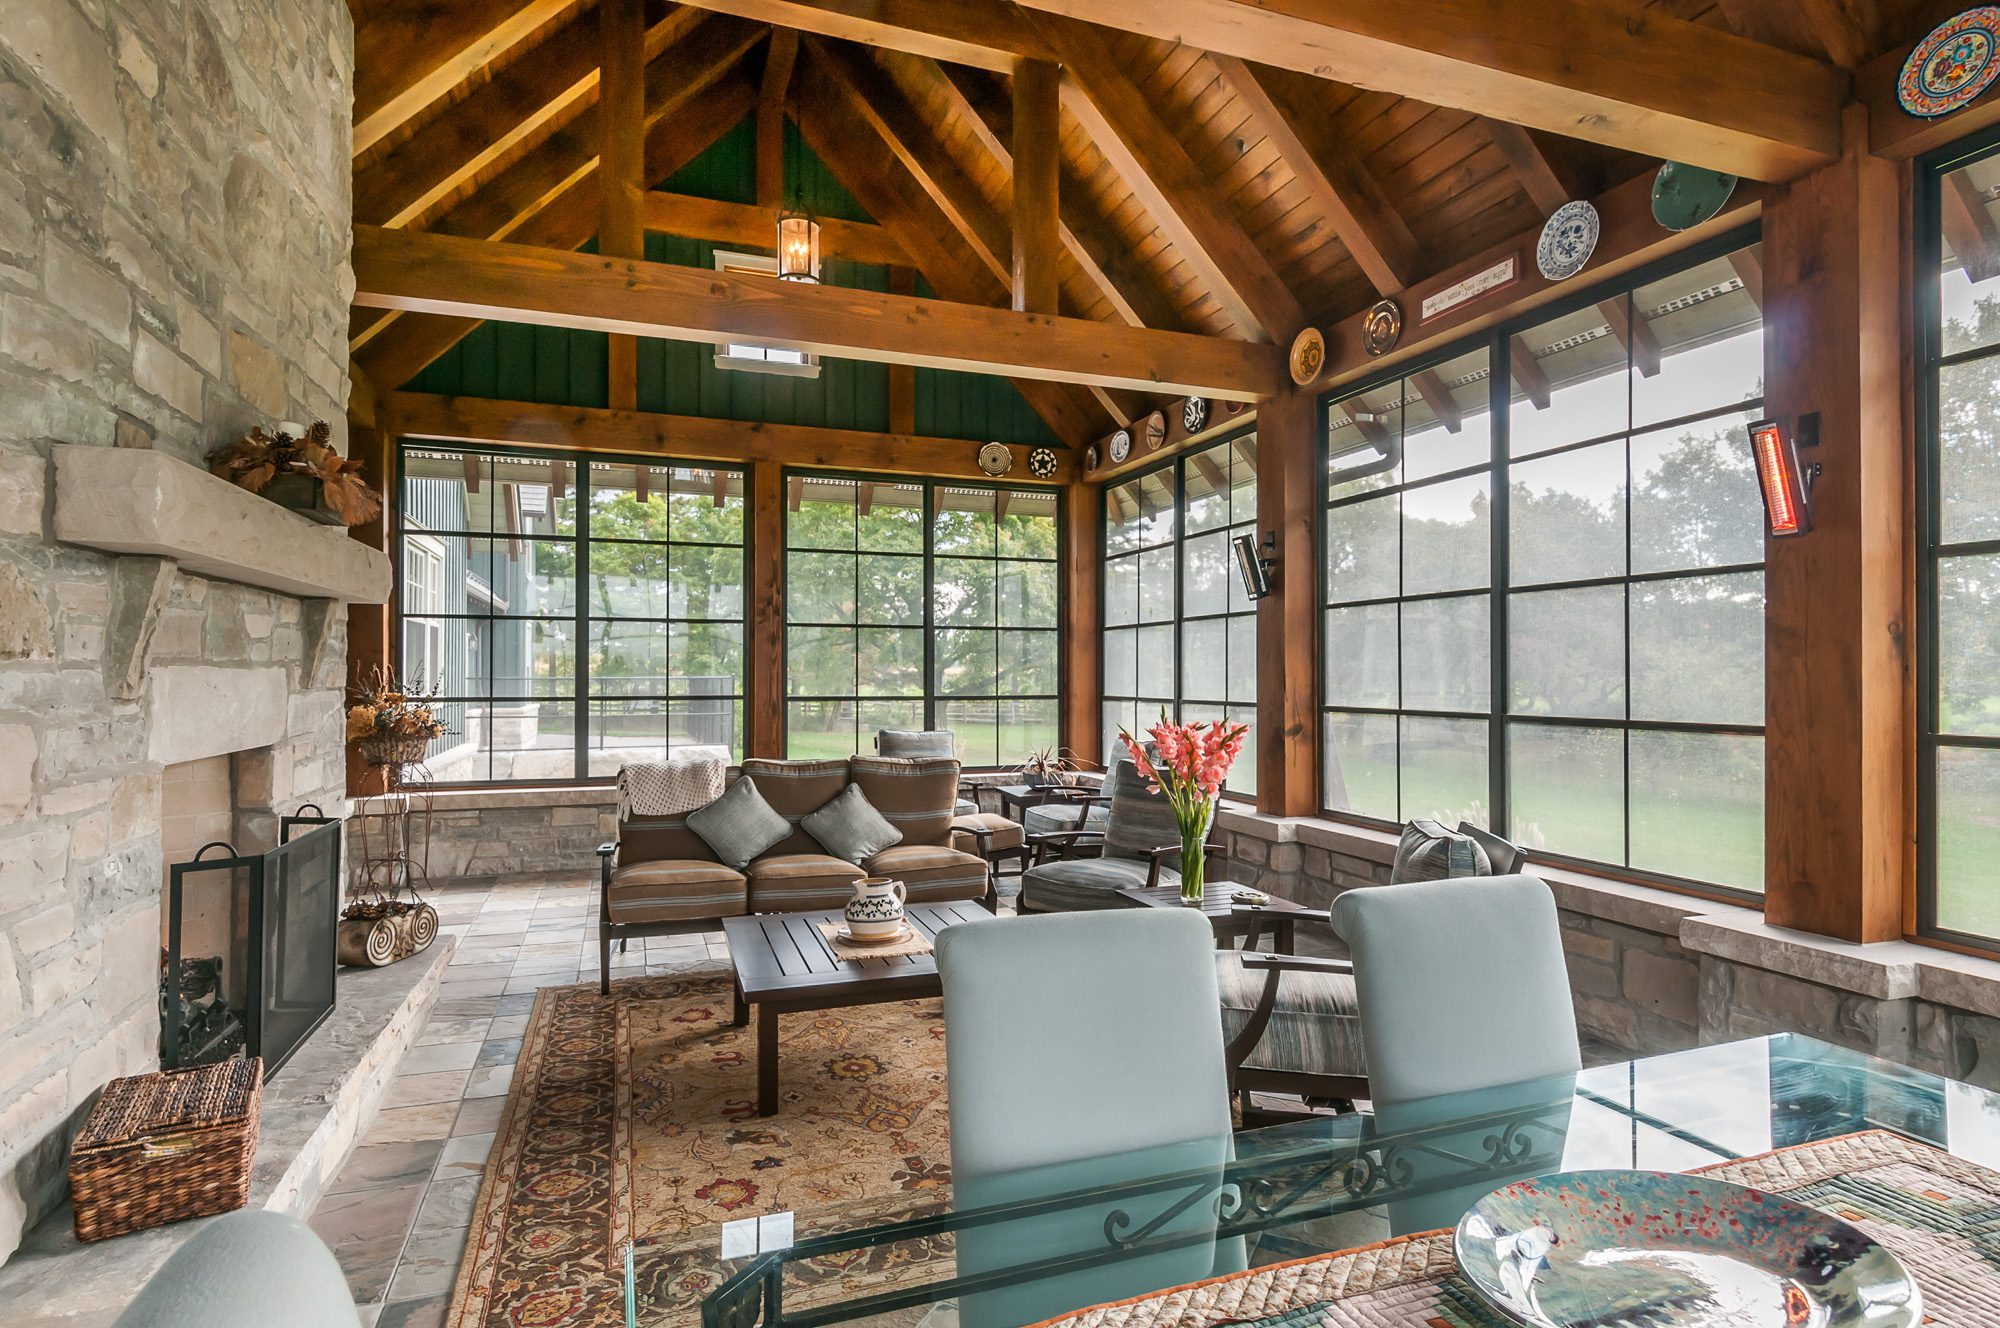 Normerica Timber Frame, Interior, Country House, 3 seasons room, Screened Porch, Fireplace